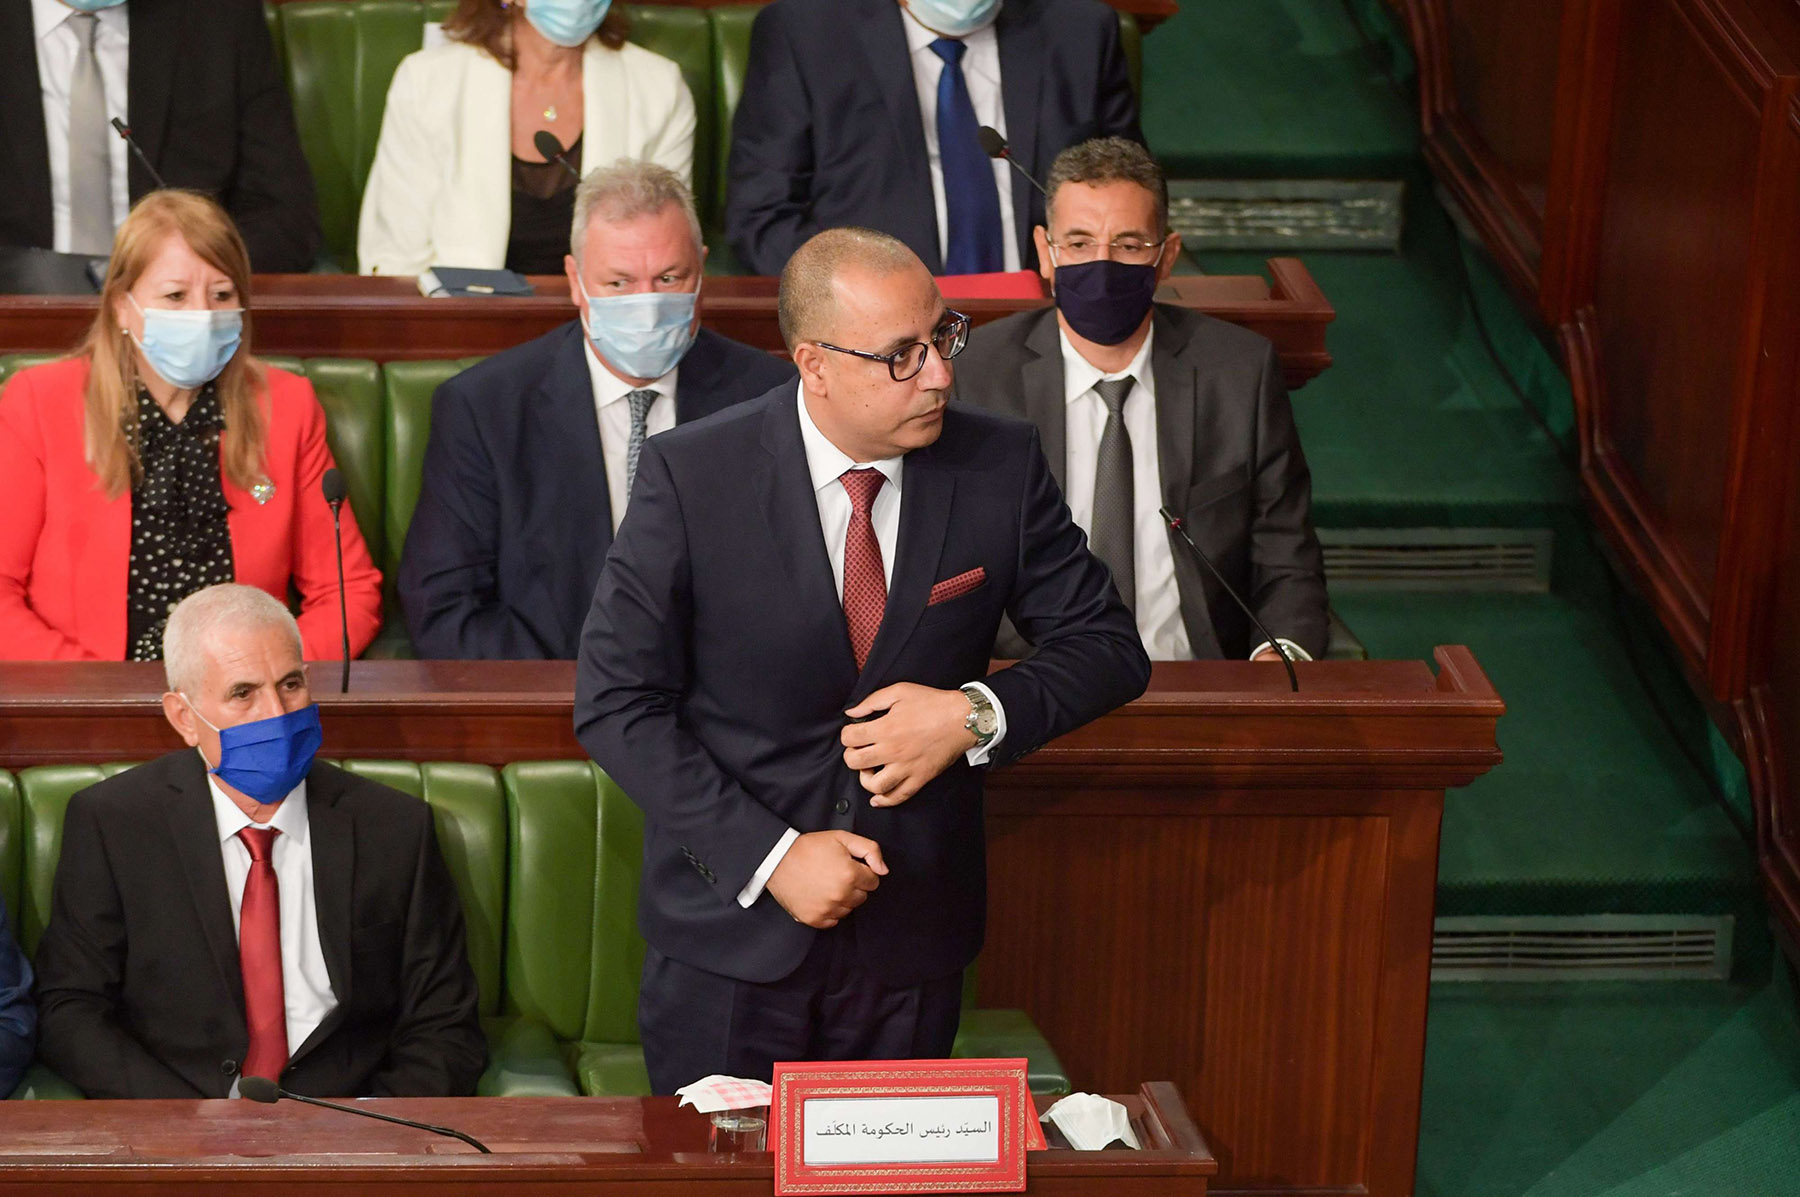 PM Hichem Mechichi stands to deliver a speech to members of parliament as they hold session of confidence in the capital Tunis on September 1. (AFP)